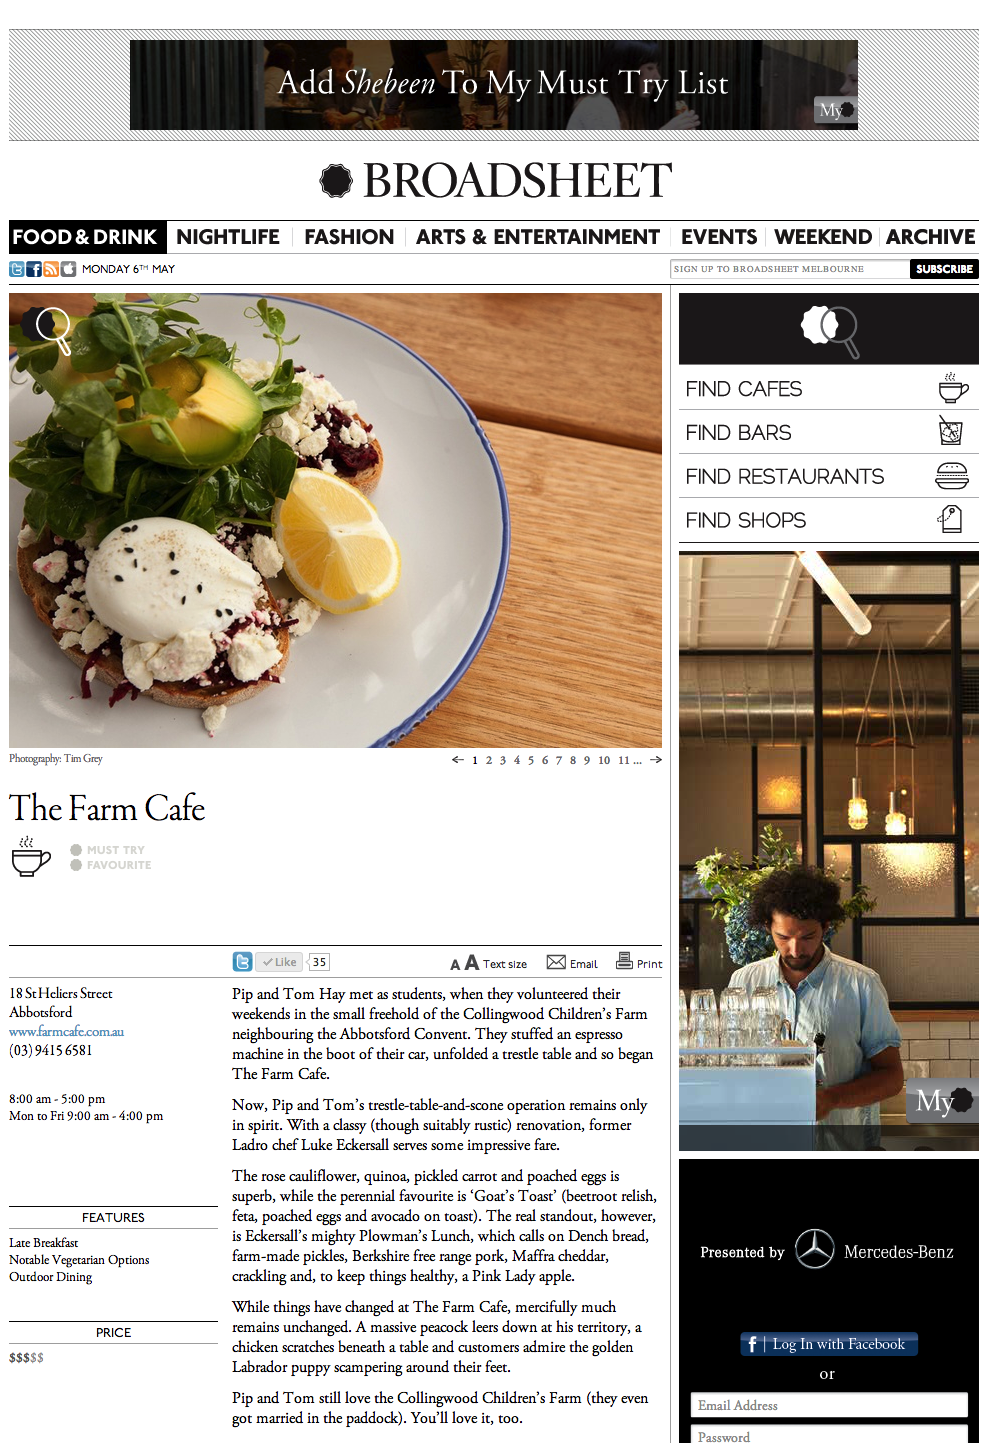 Melbourne Broadsheet Cafe Review, May 2013